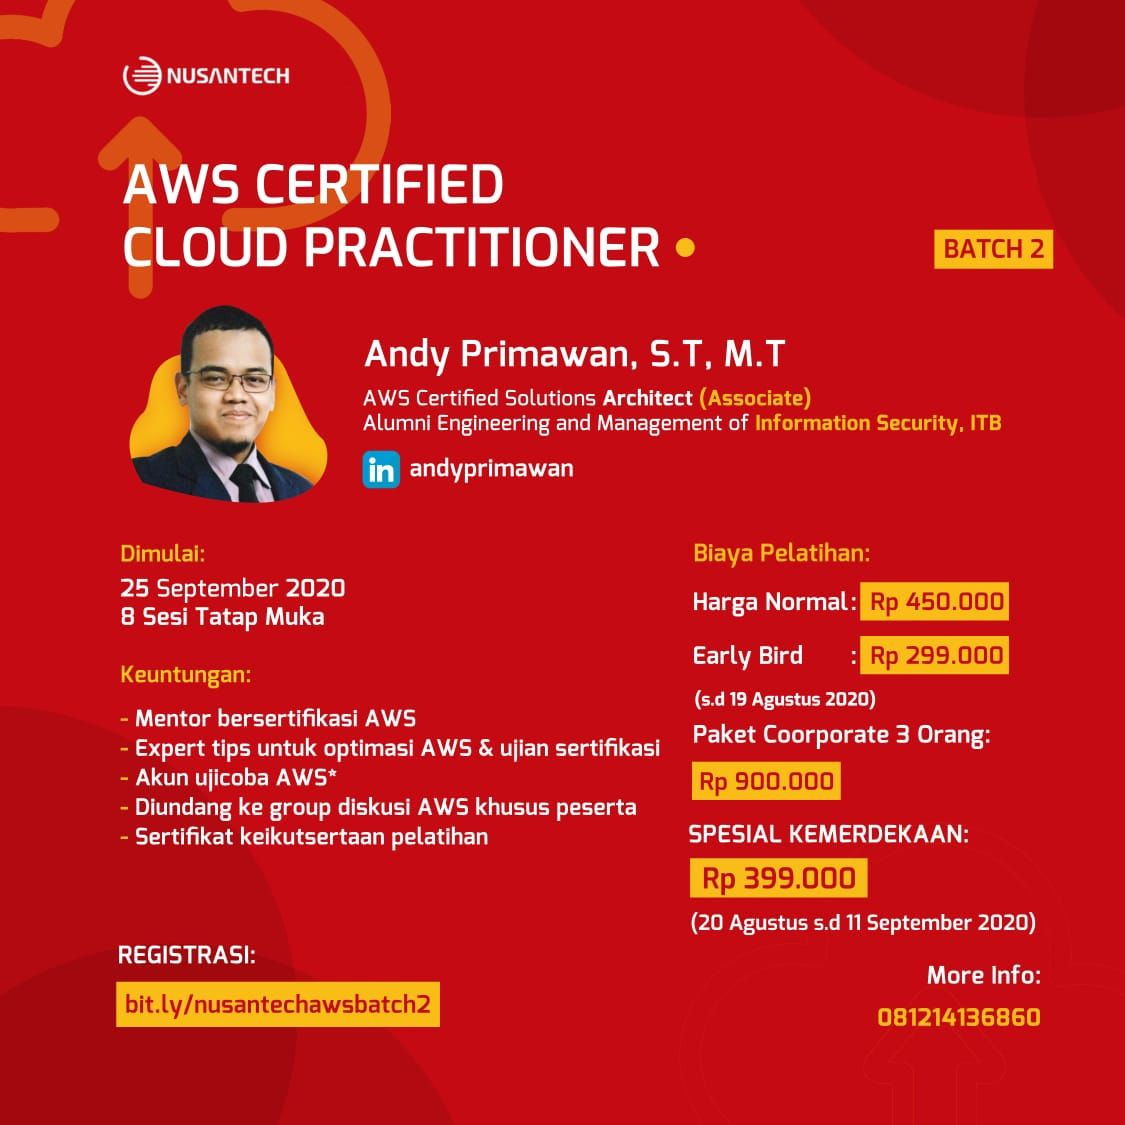 Pelatihan Persiapan AWS Certified Cloud Practitioner - Batch 2